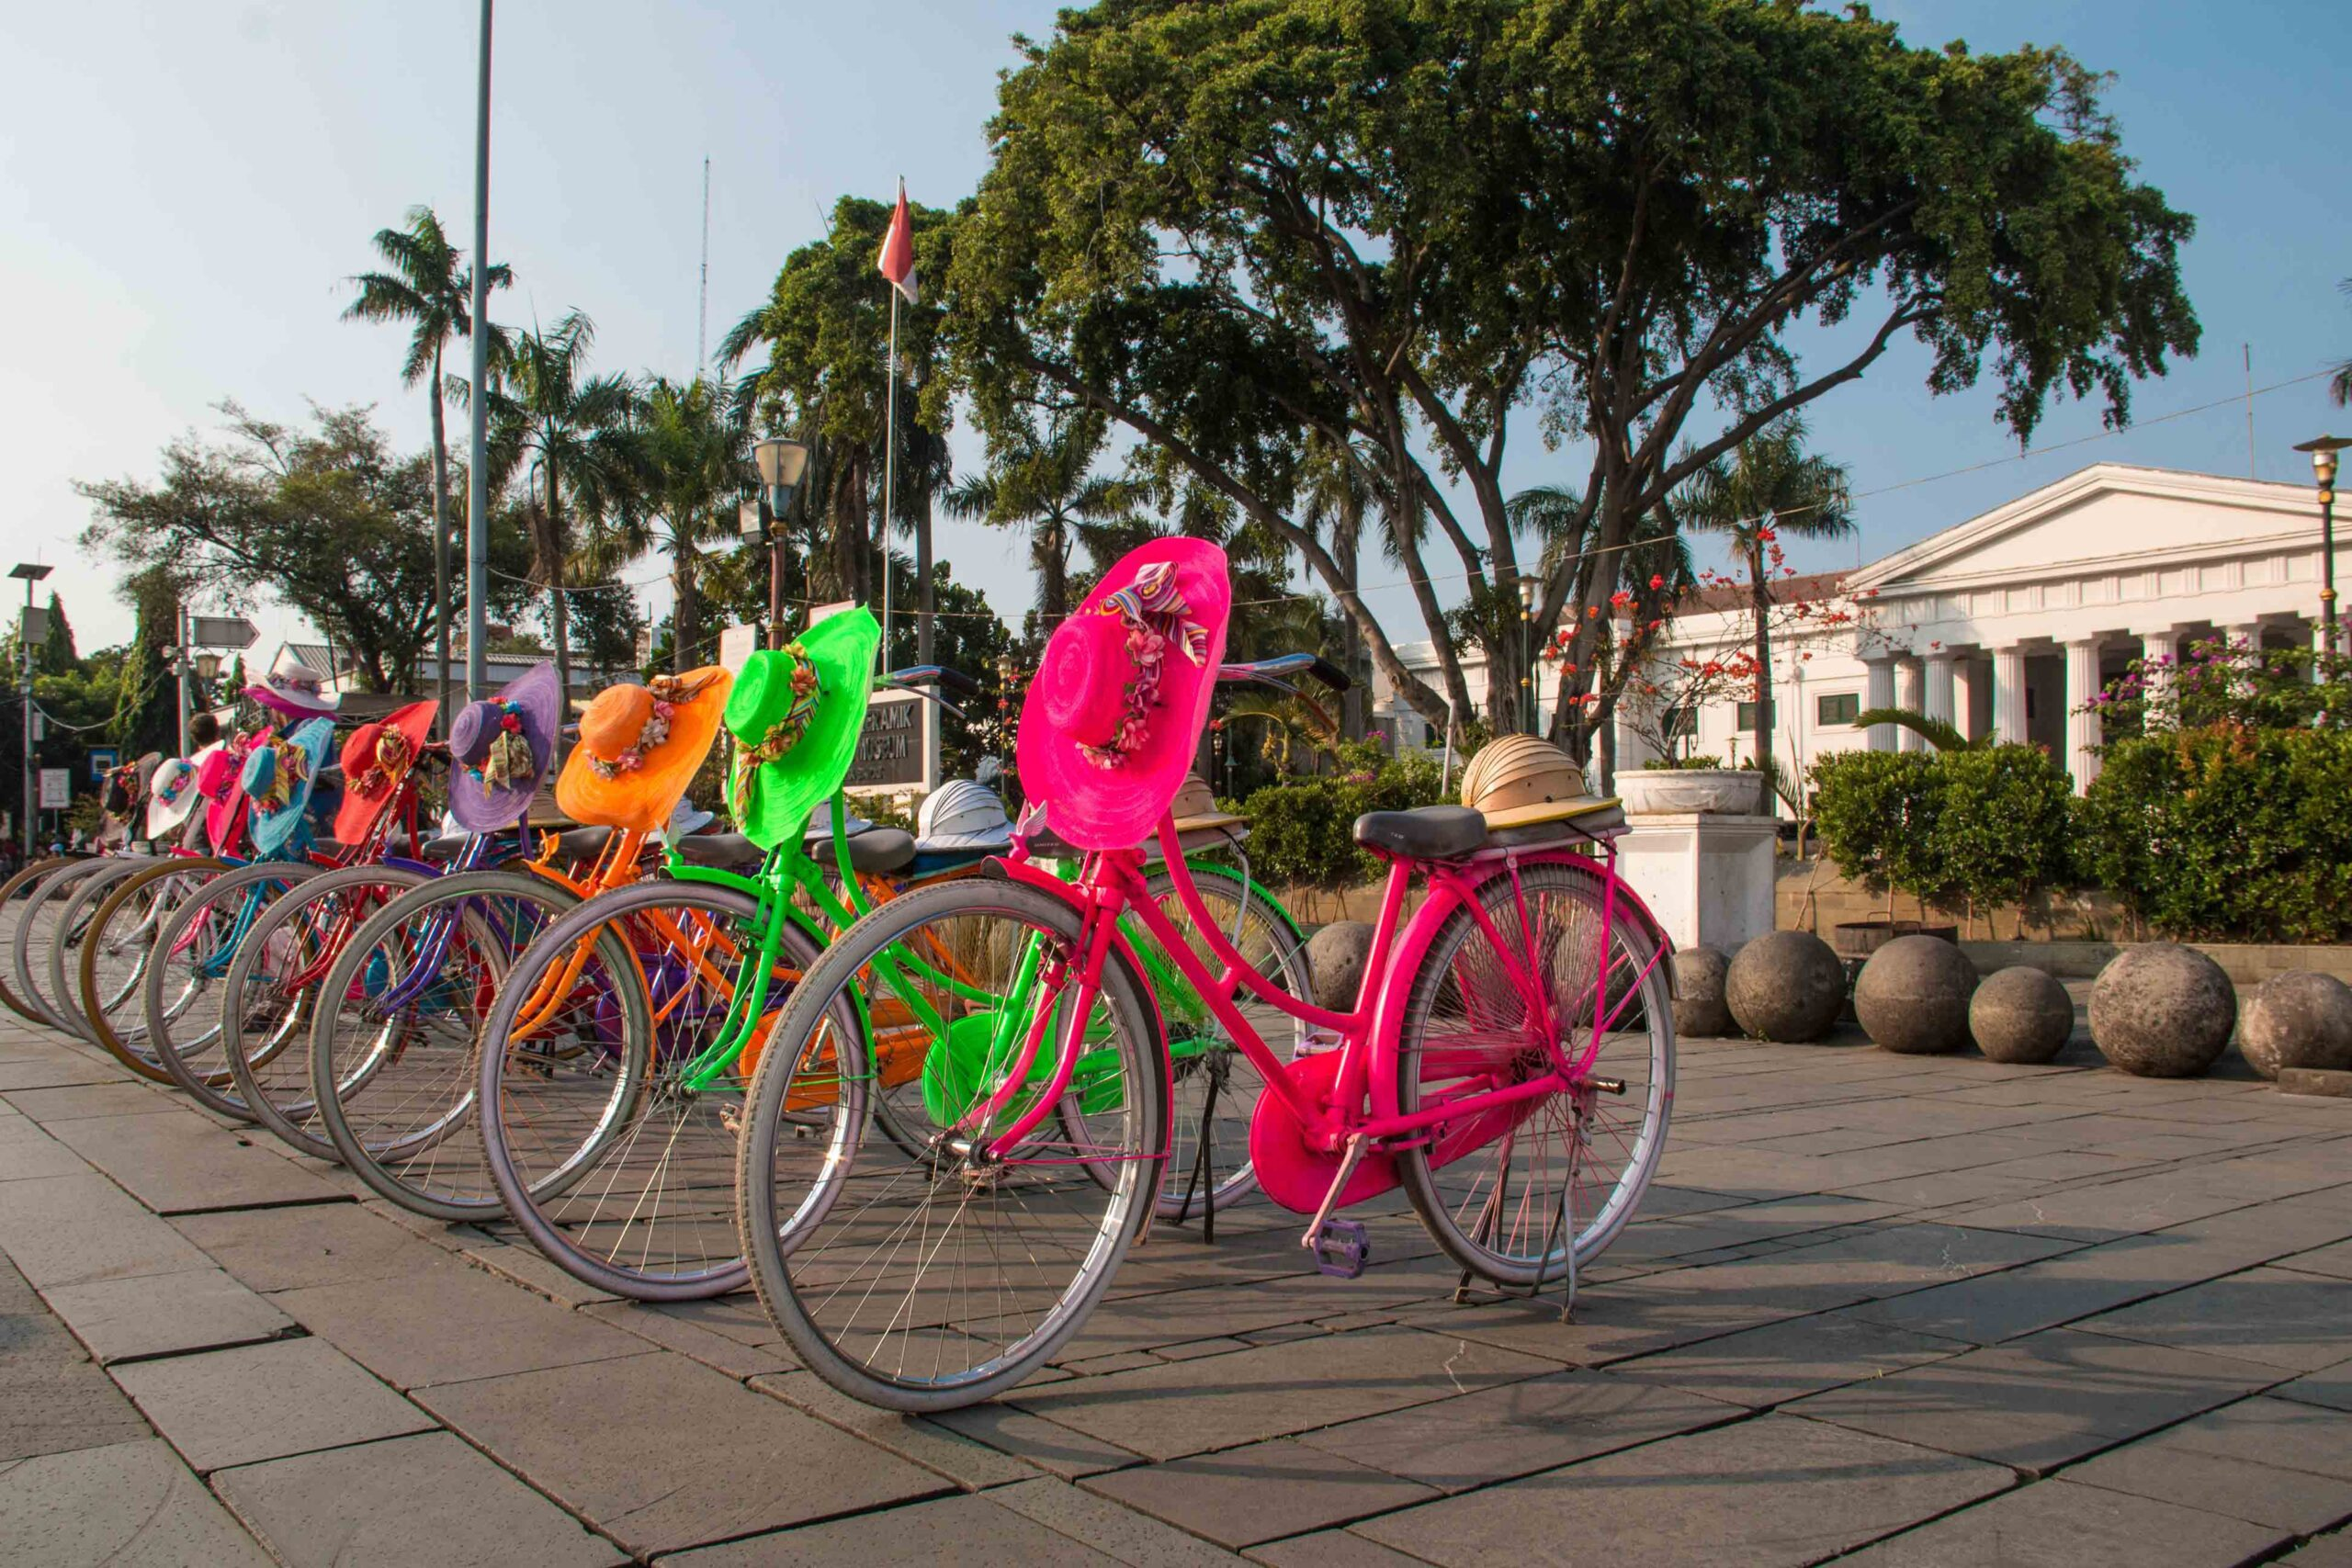 Bicycles on the Batavia Square in Jakarta Indonesia